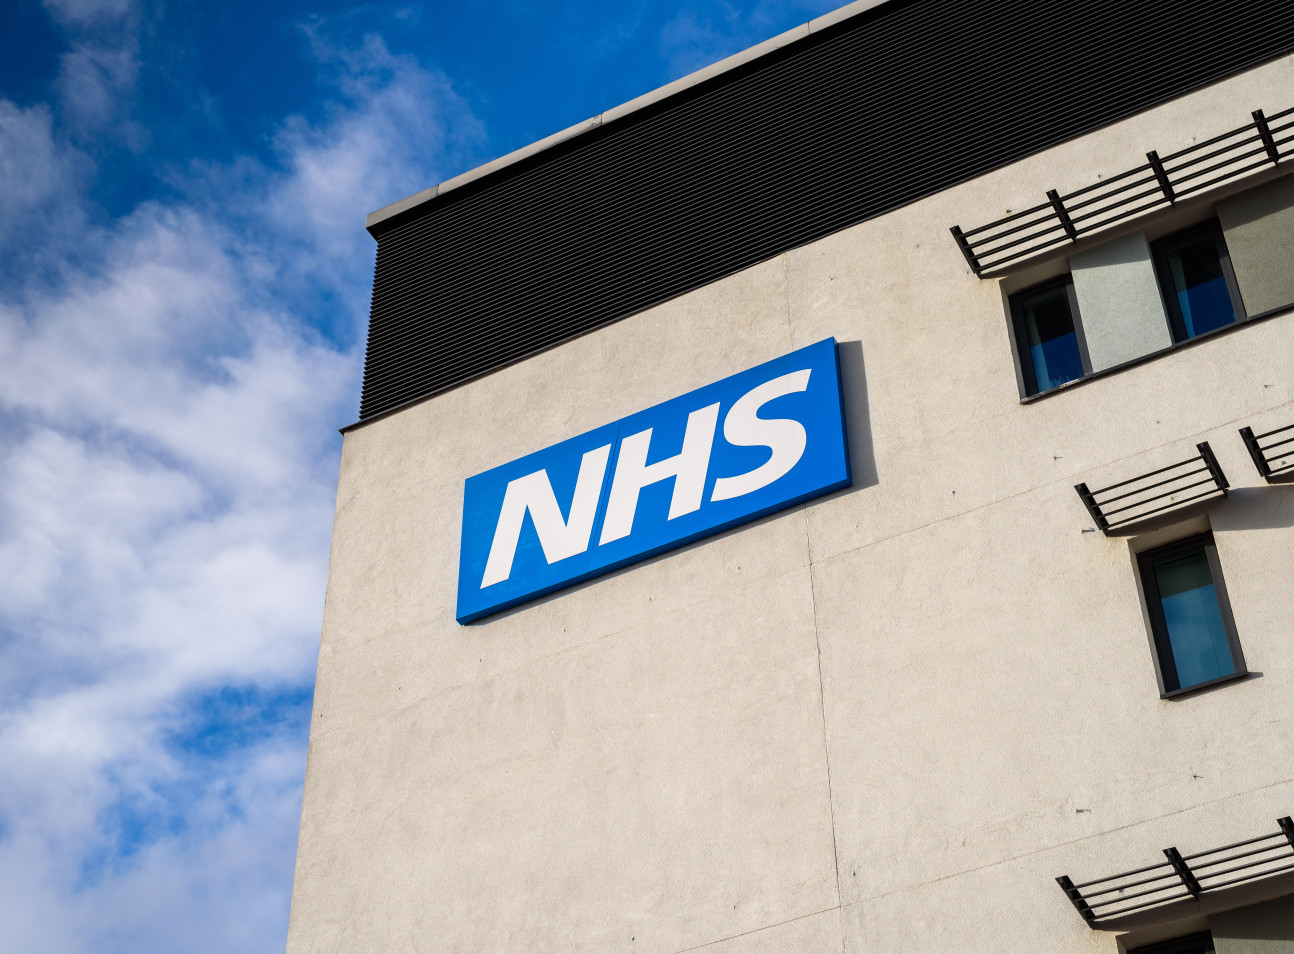 NHS logo on a hospital building